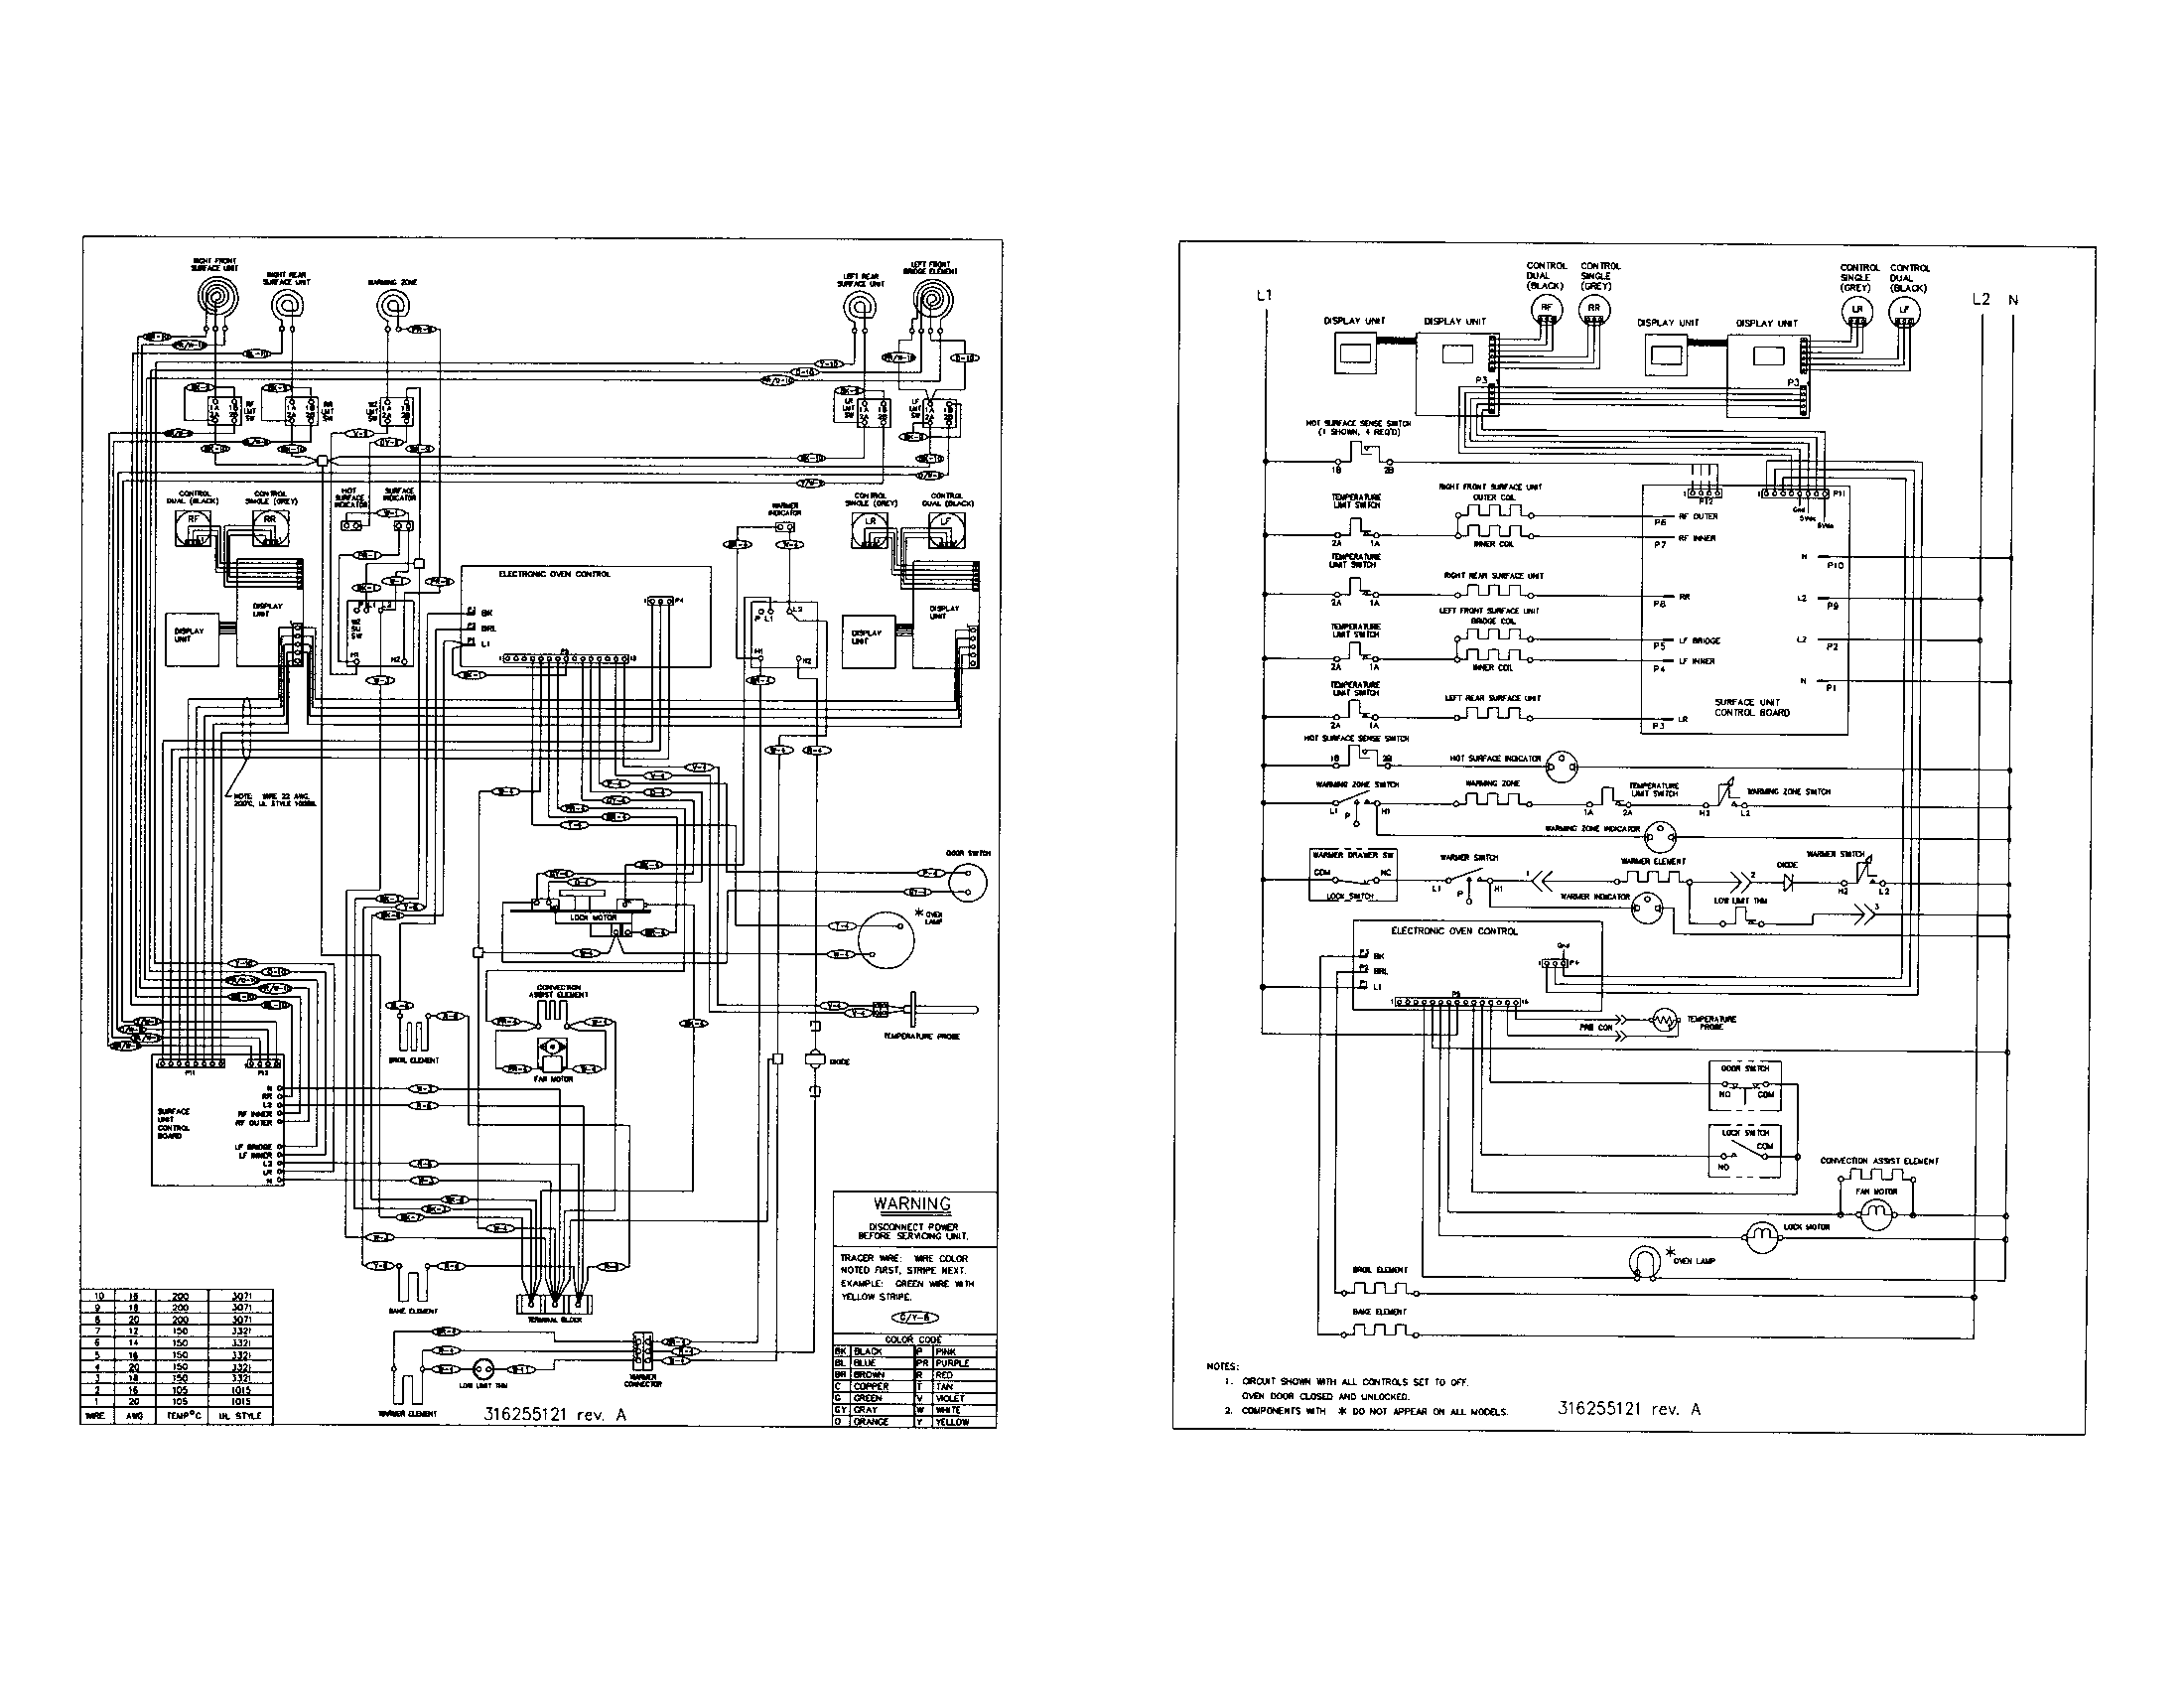 Ge Dryer Door Switch Wiring Diagram : Ge dryer door switch wiring diagram free engine image